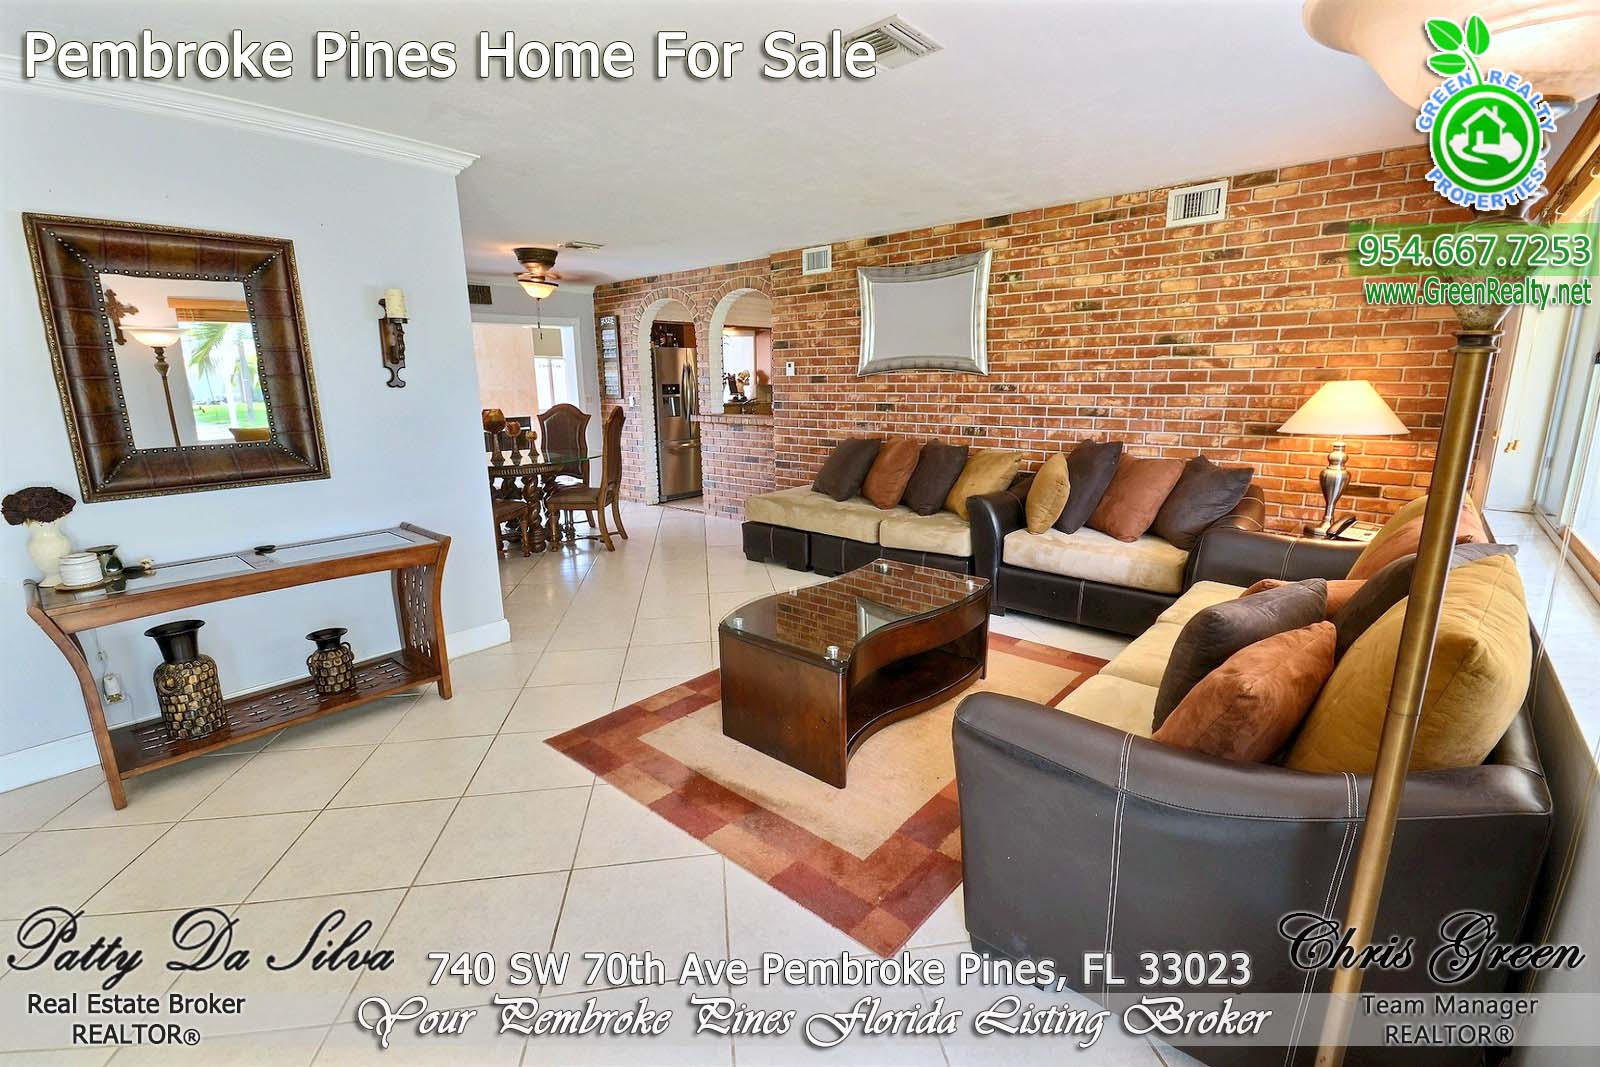 7 Pembroke Pines Homes For Sale (5)